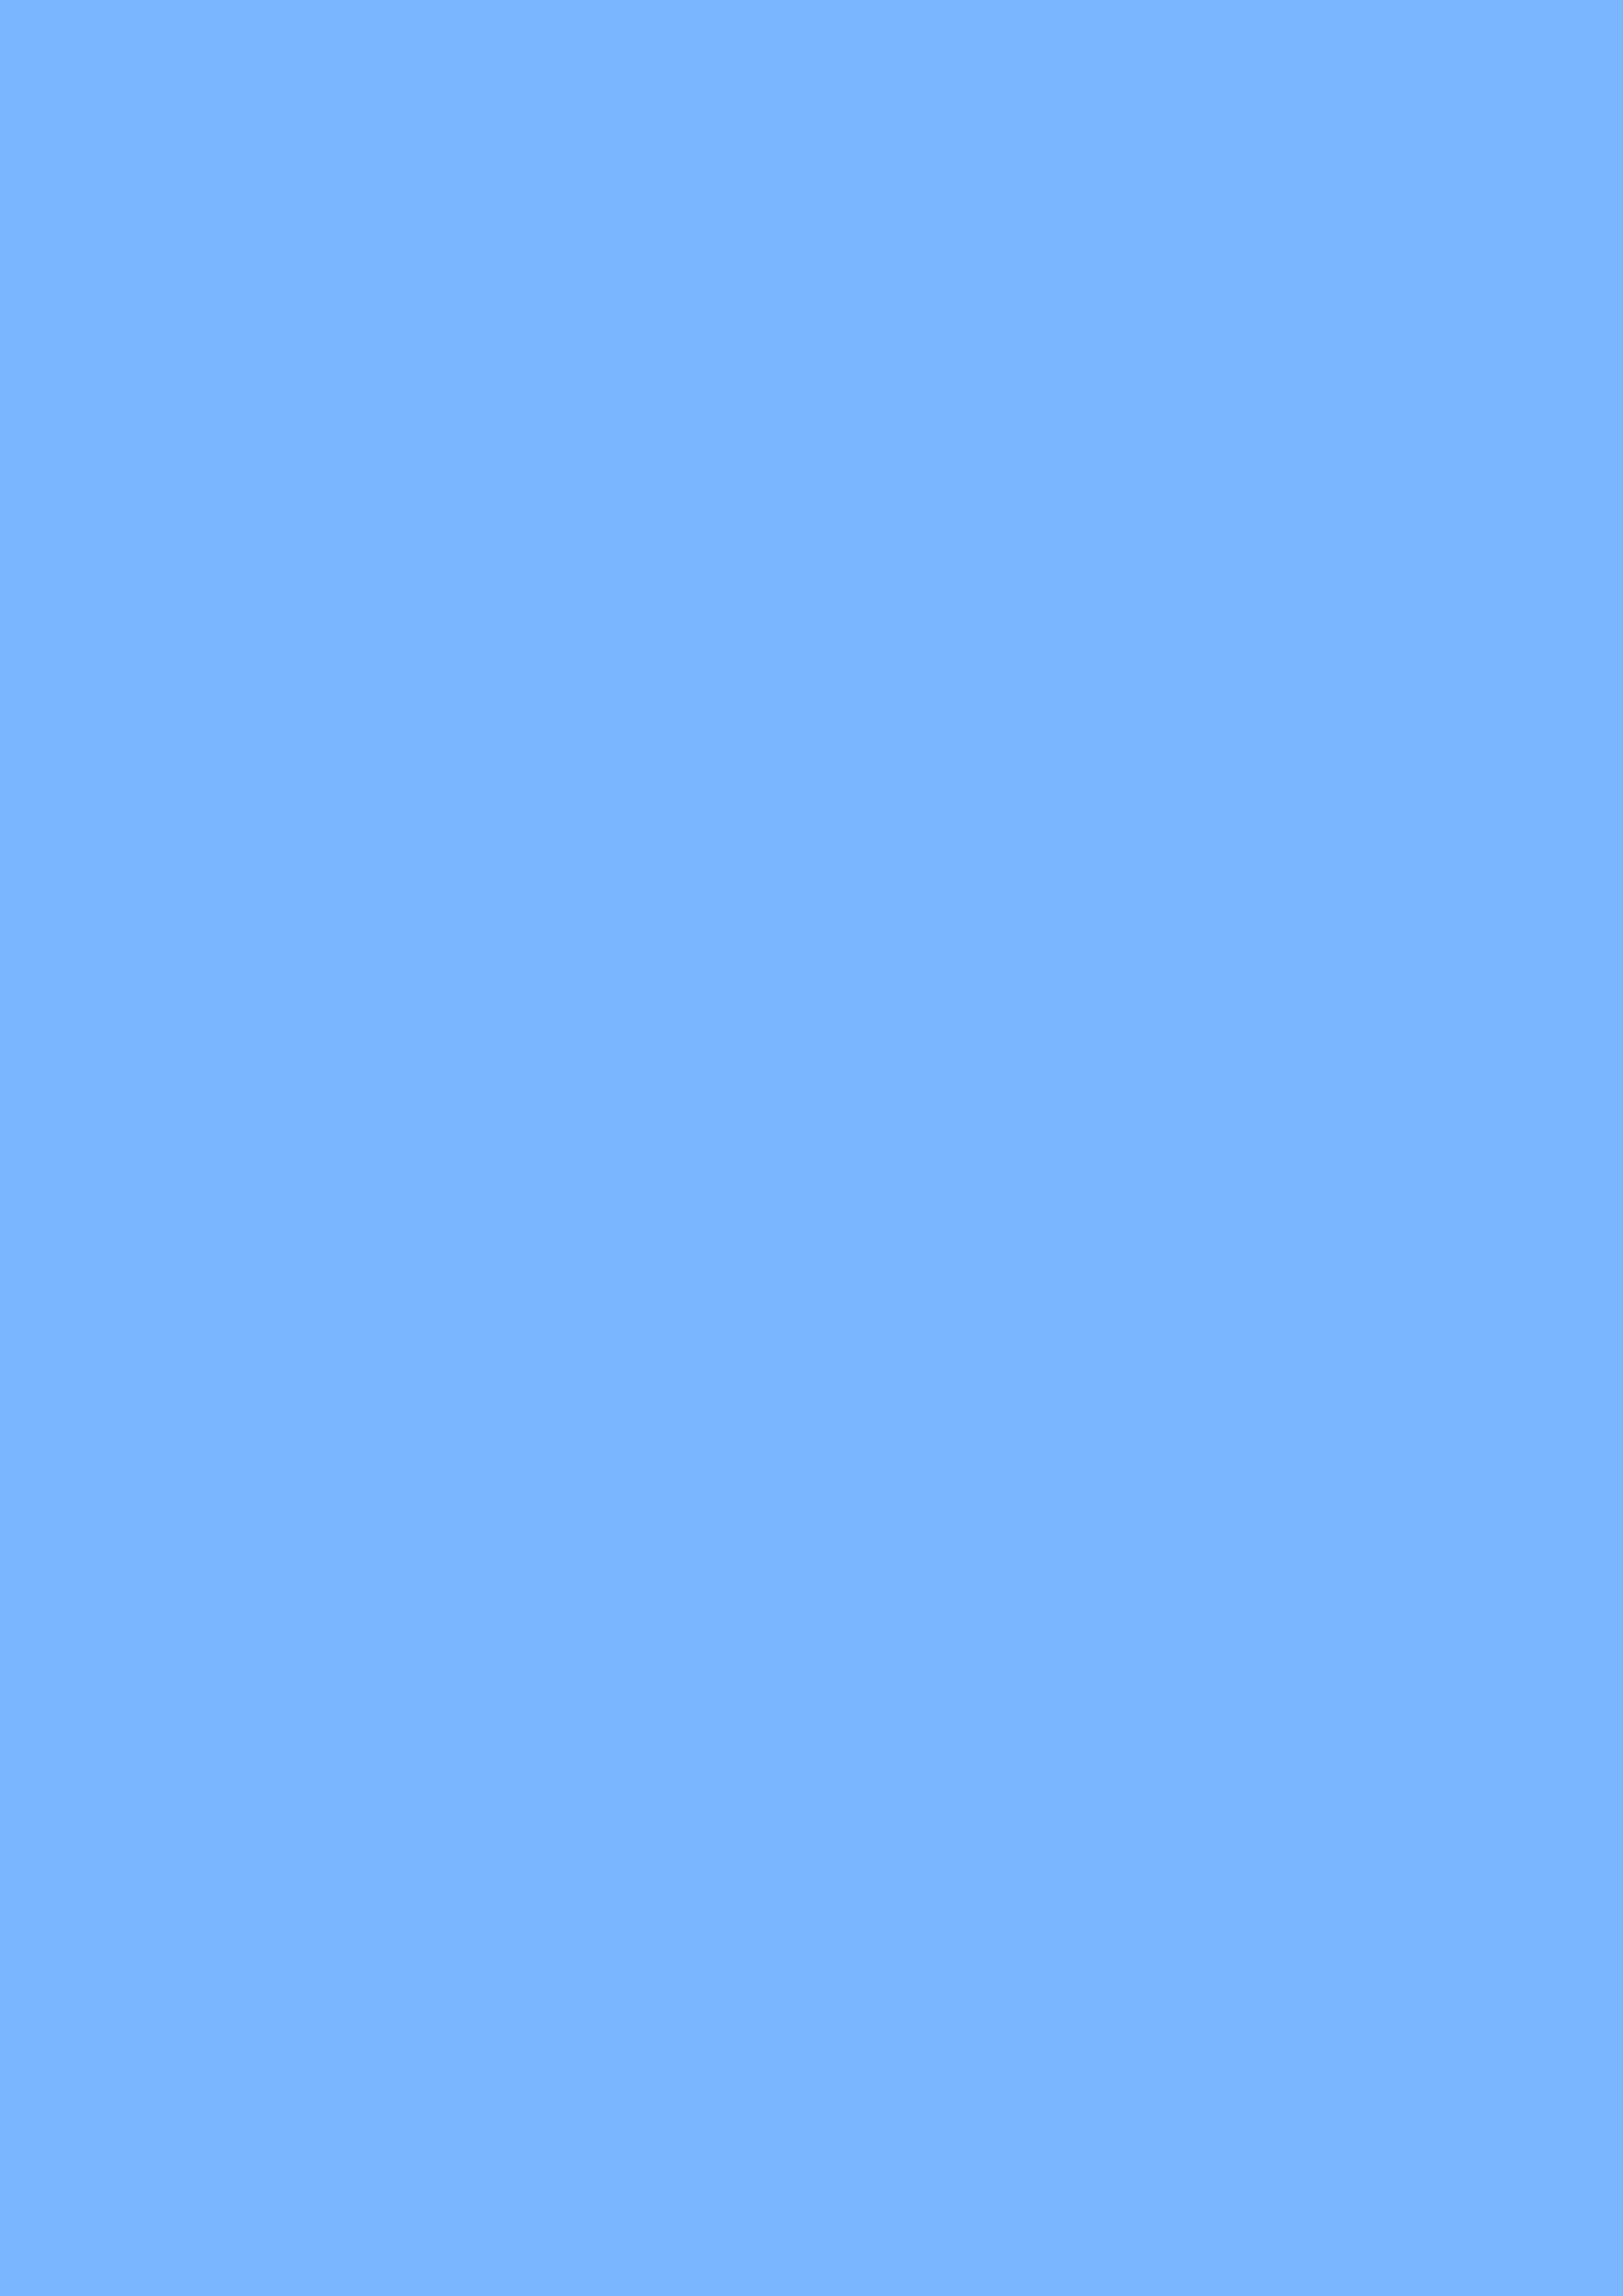 2480x3508 French Sky Blue Solid Color Background